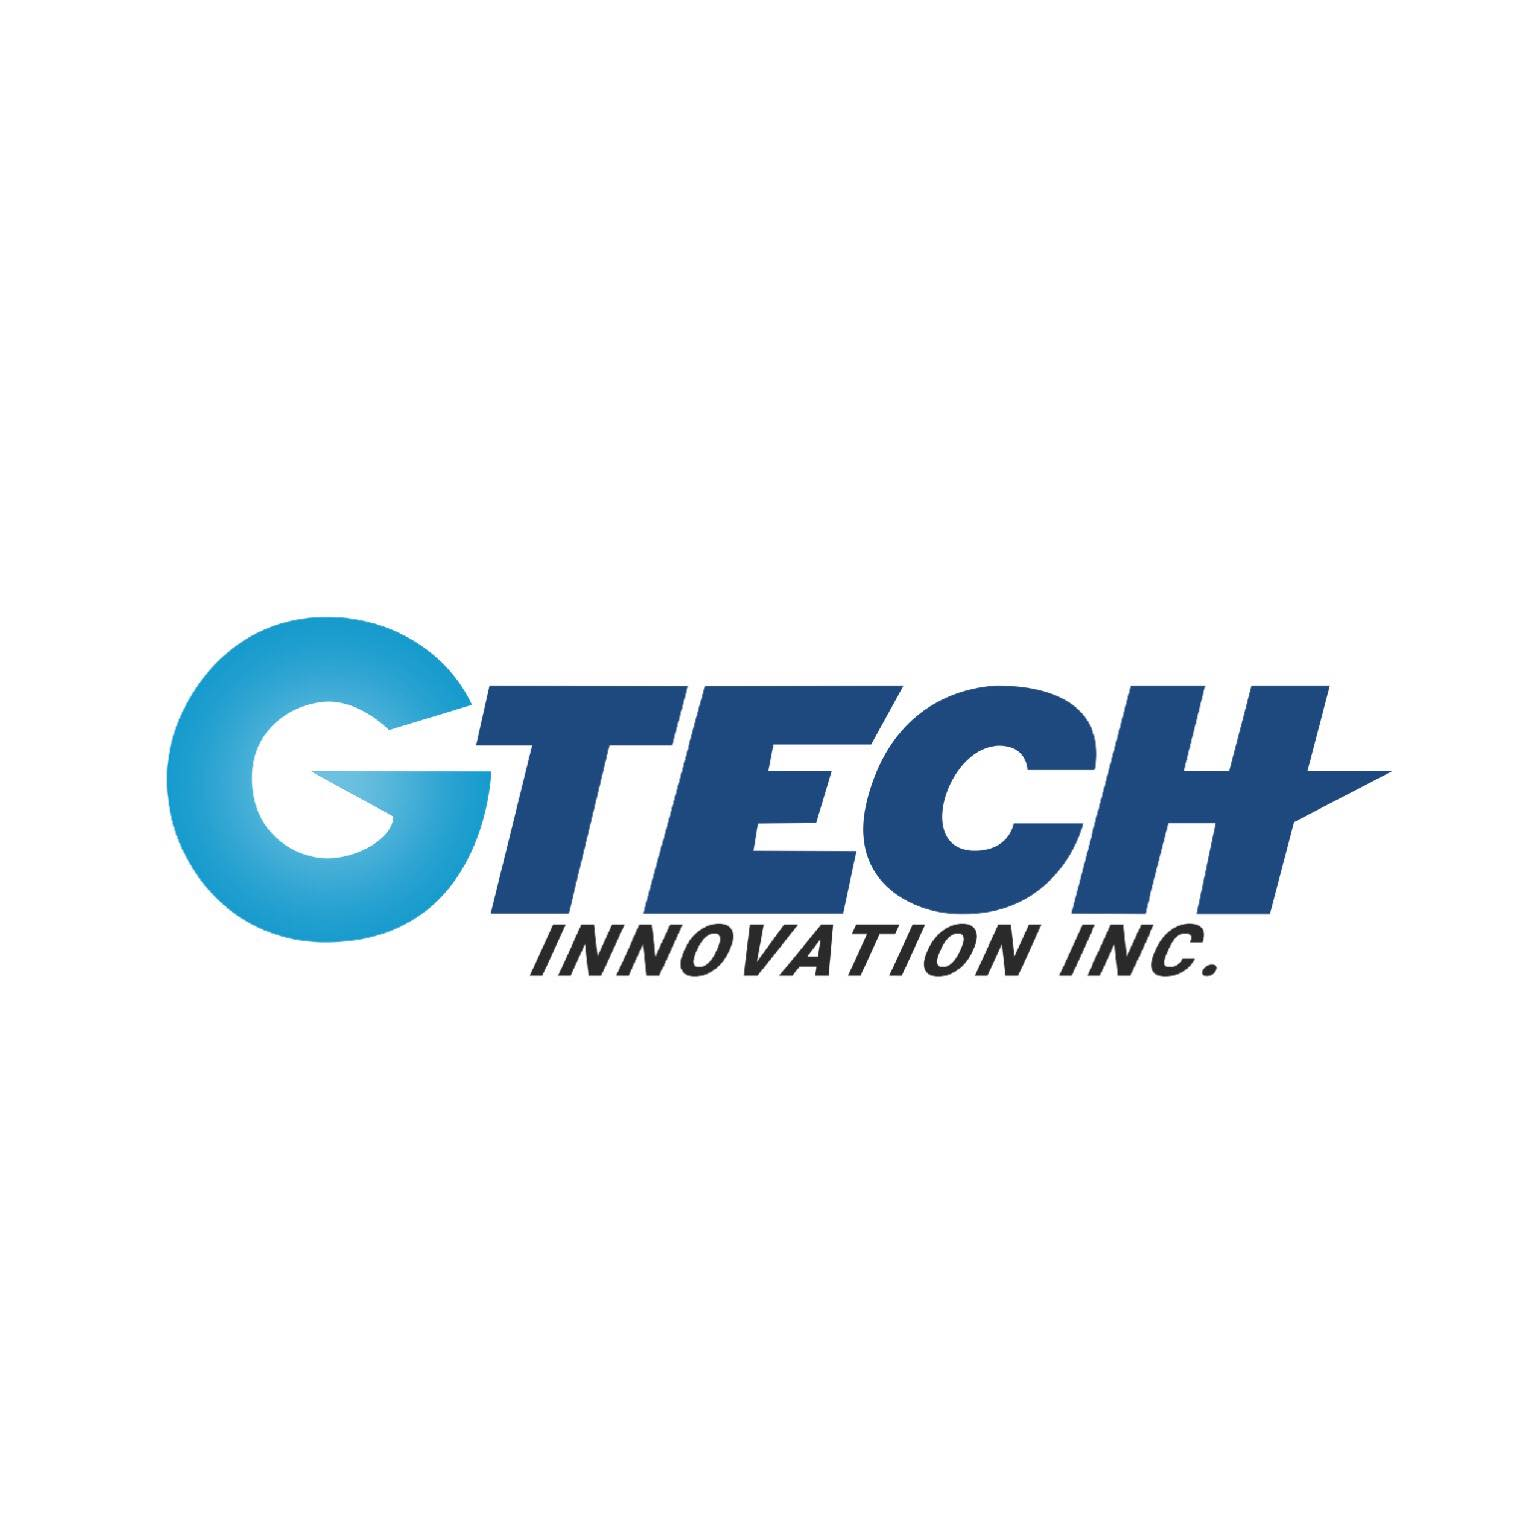 G-Tech Innovation, INC logo